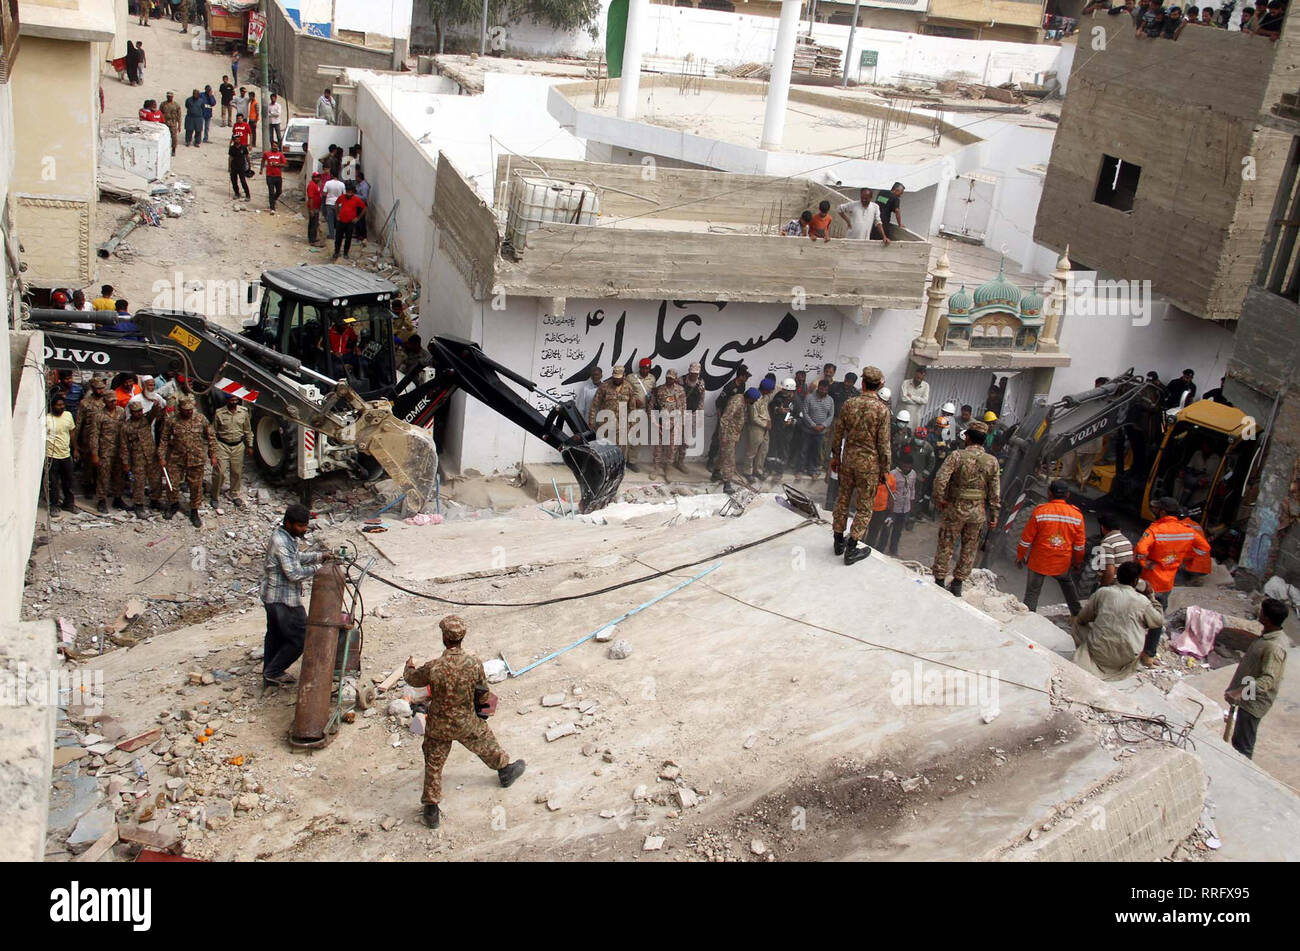 Pak Army officials are busy in rescue operation at the site of